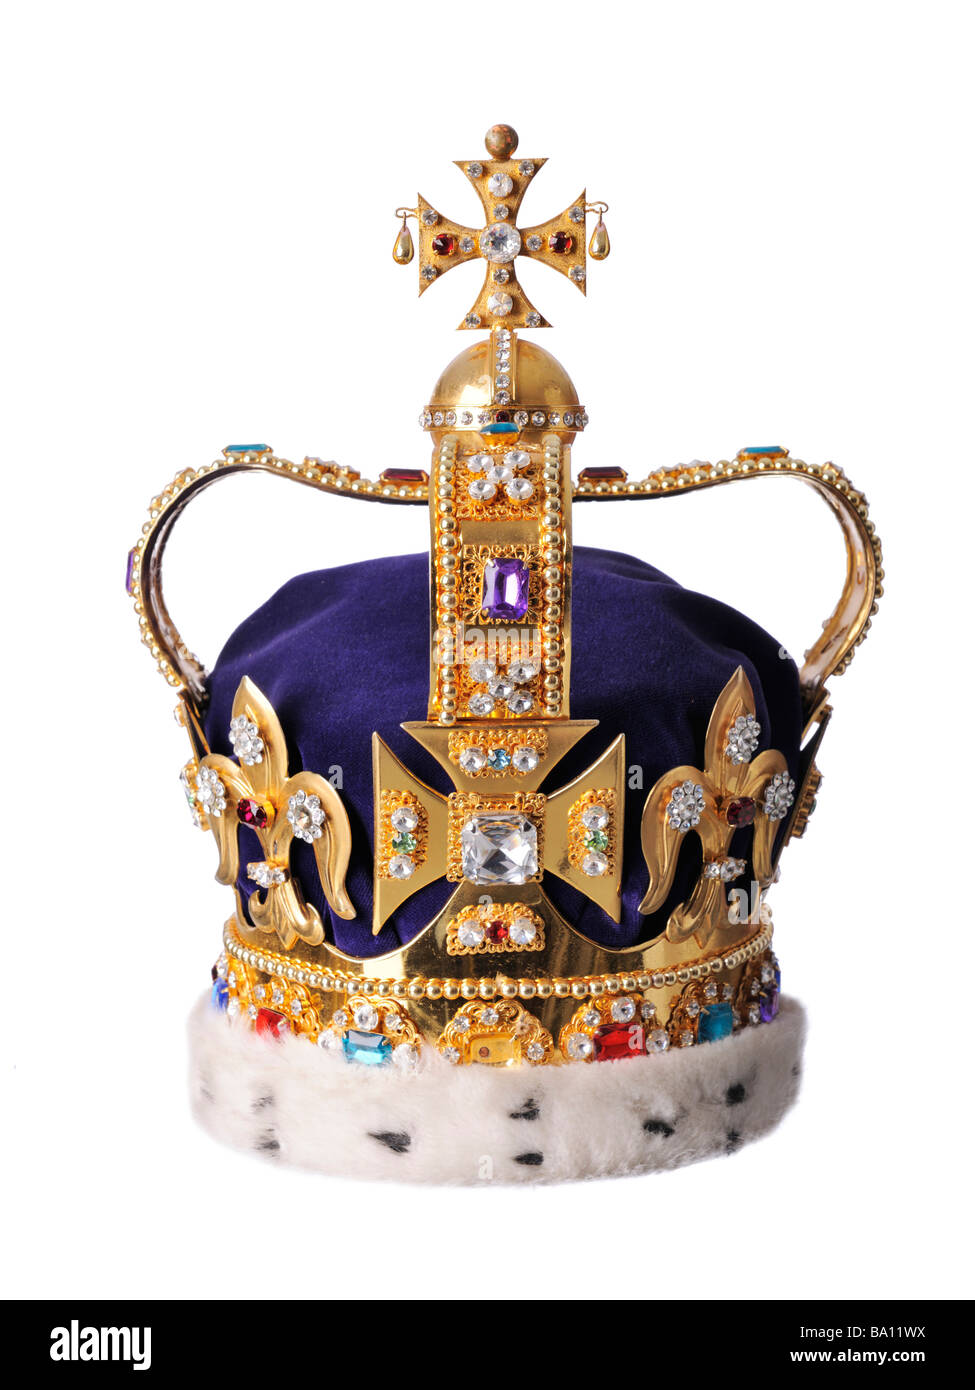 King's Royal Crown - Stock Image